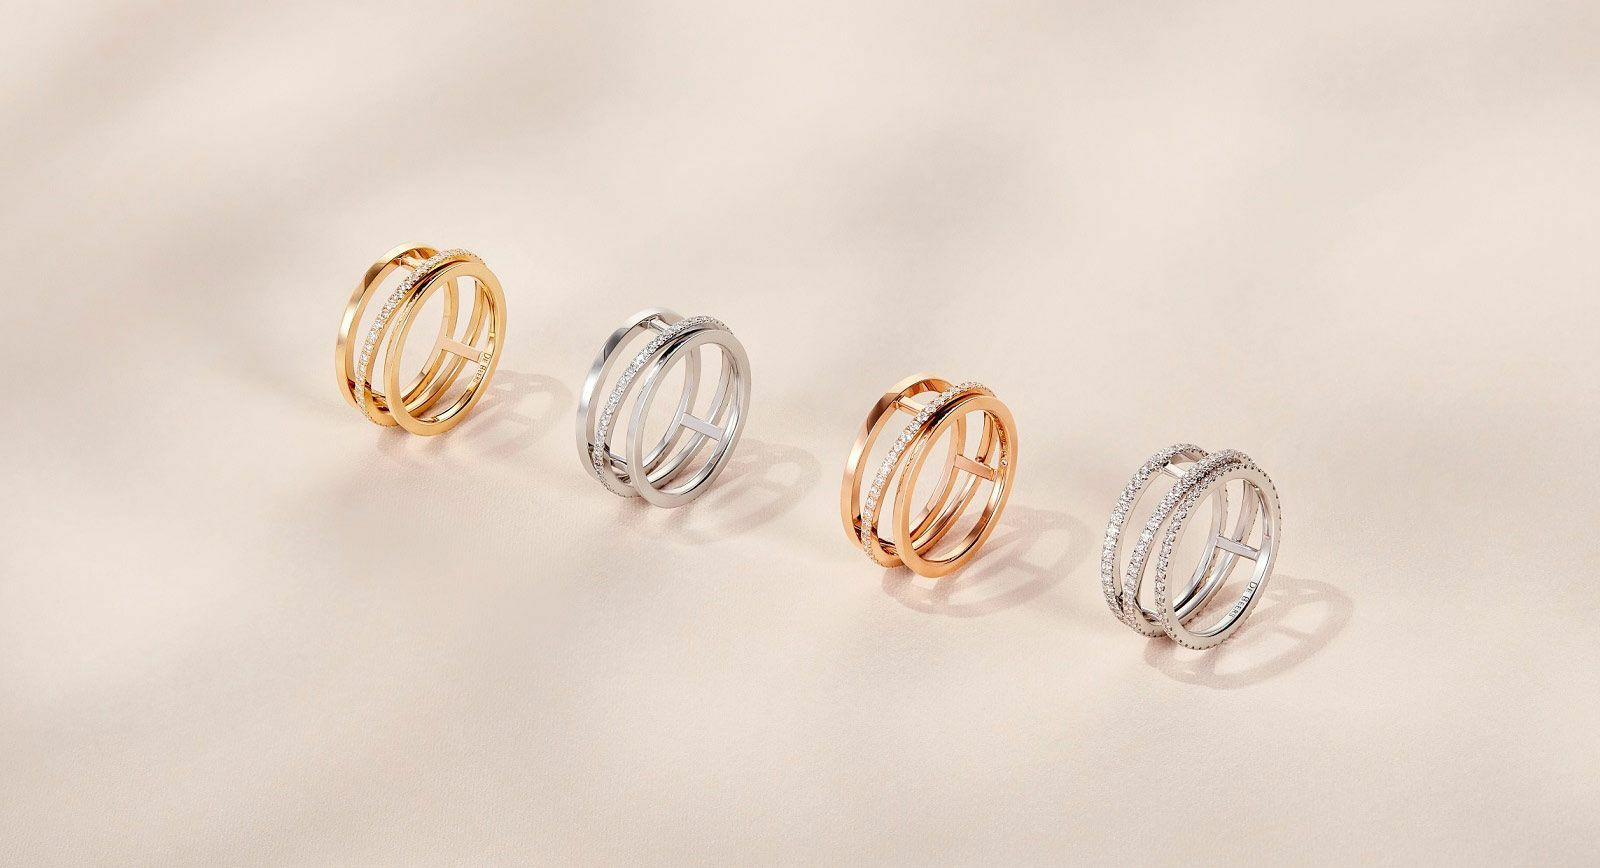 De Beers' new 'Horizon' collection rings in while, yellow and rose gold